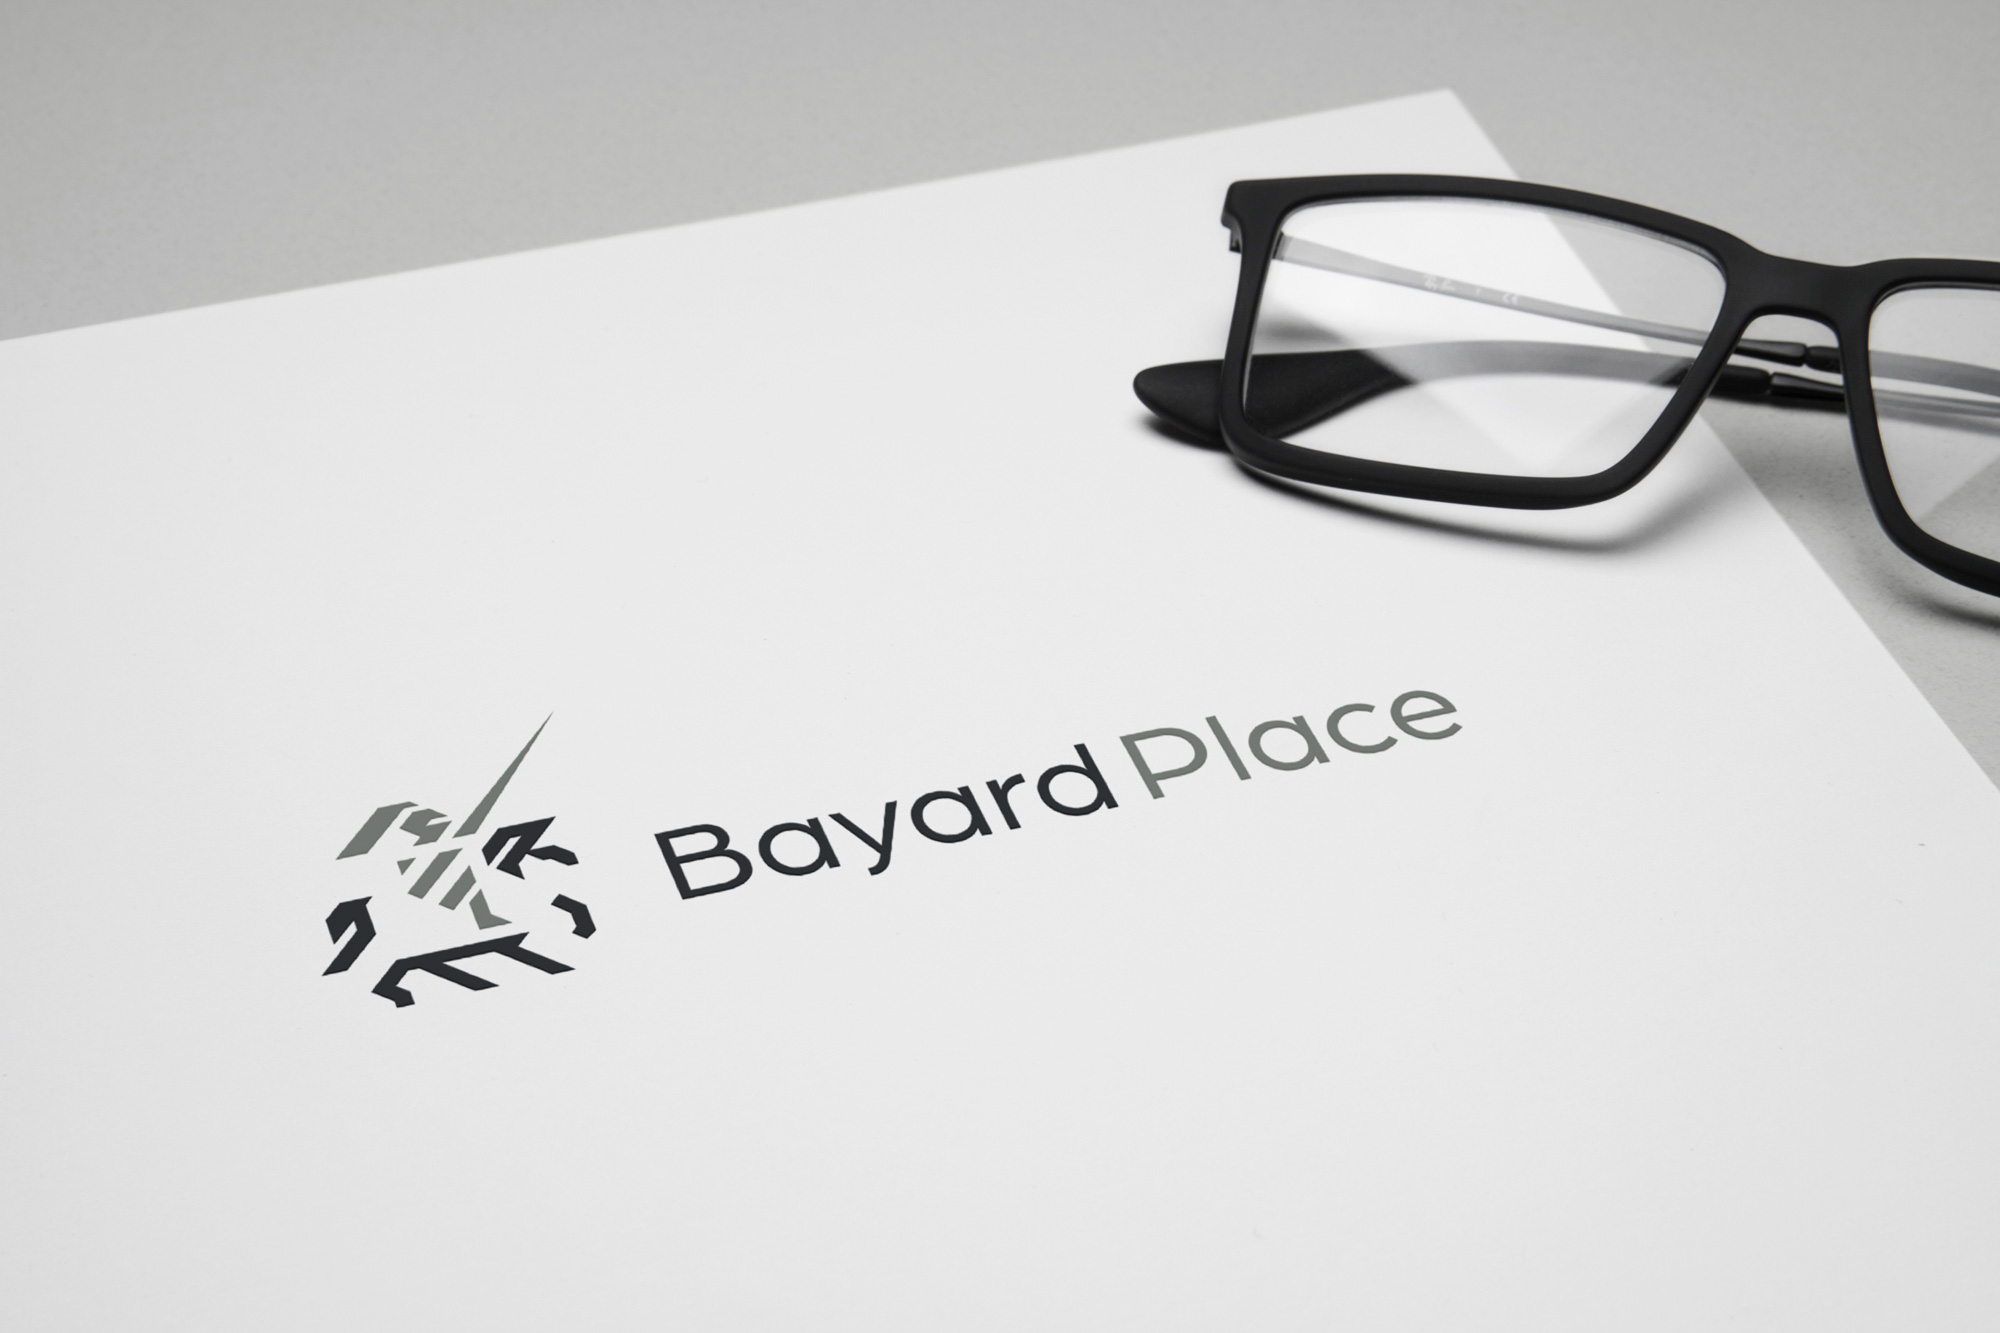 Bayard place logo on paper